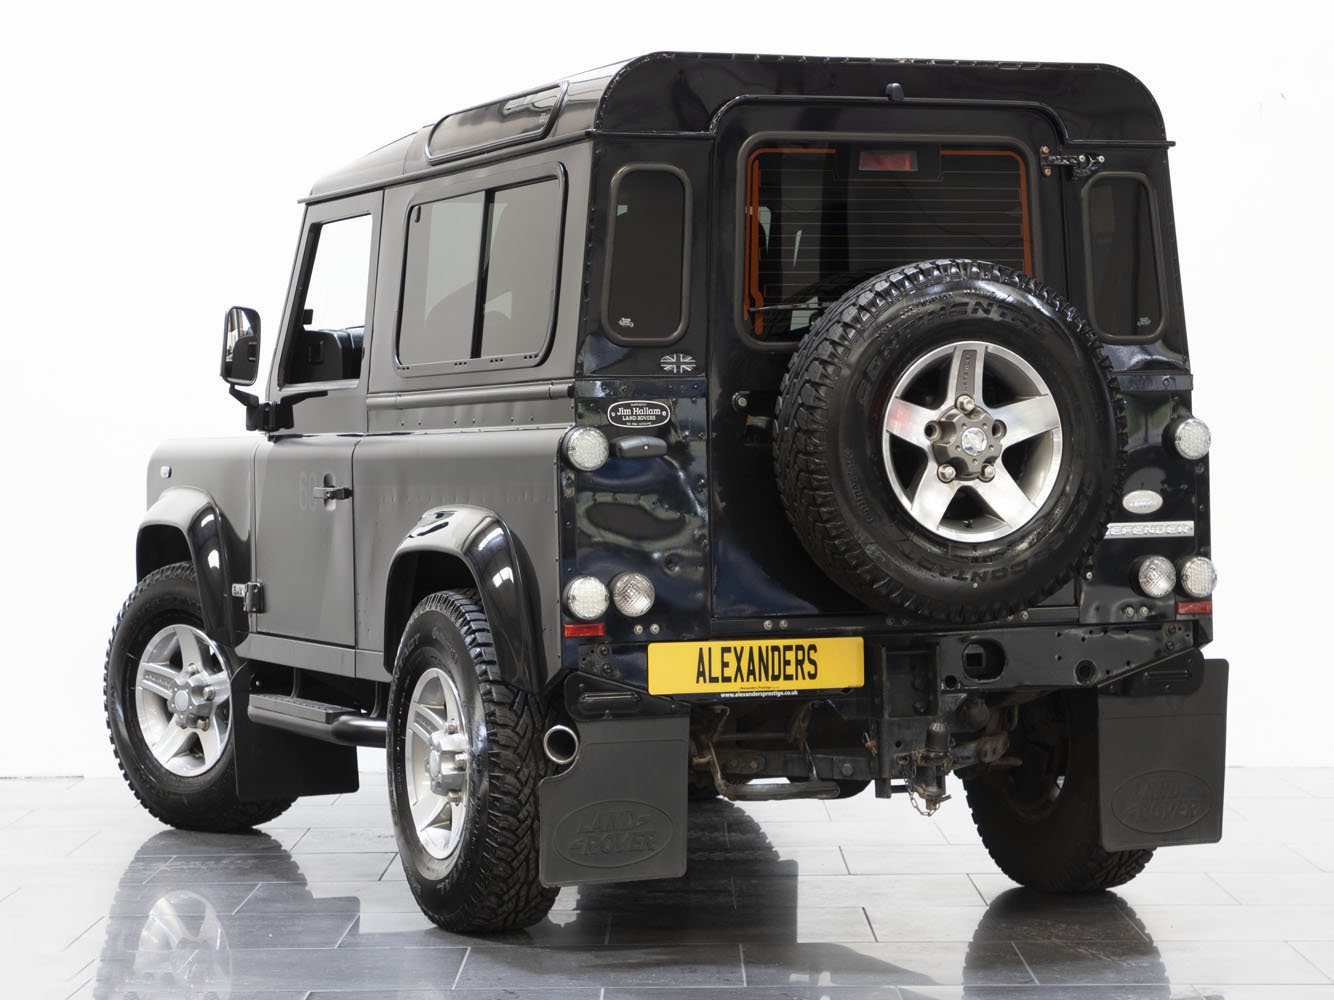 2008 08 58 LAND ROVER DEFENDER 90 SVX 60TH ANNIVERSARY EDITION For Sale (picture 3 of 6)